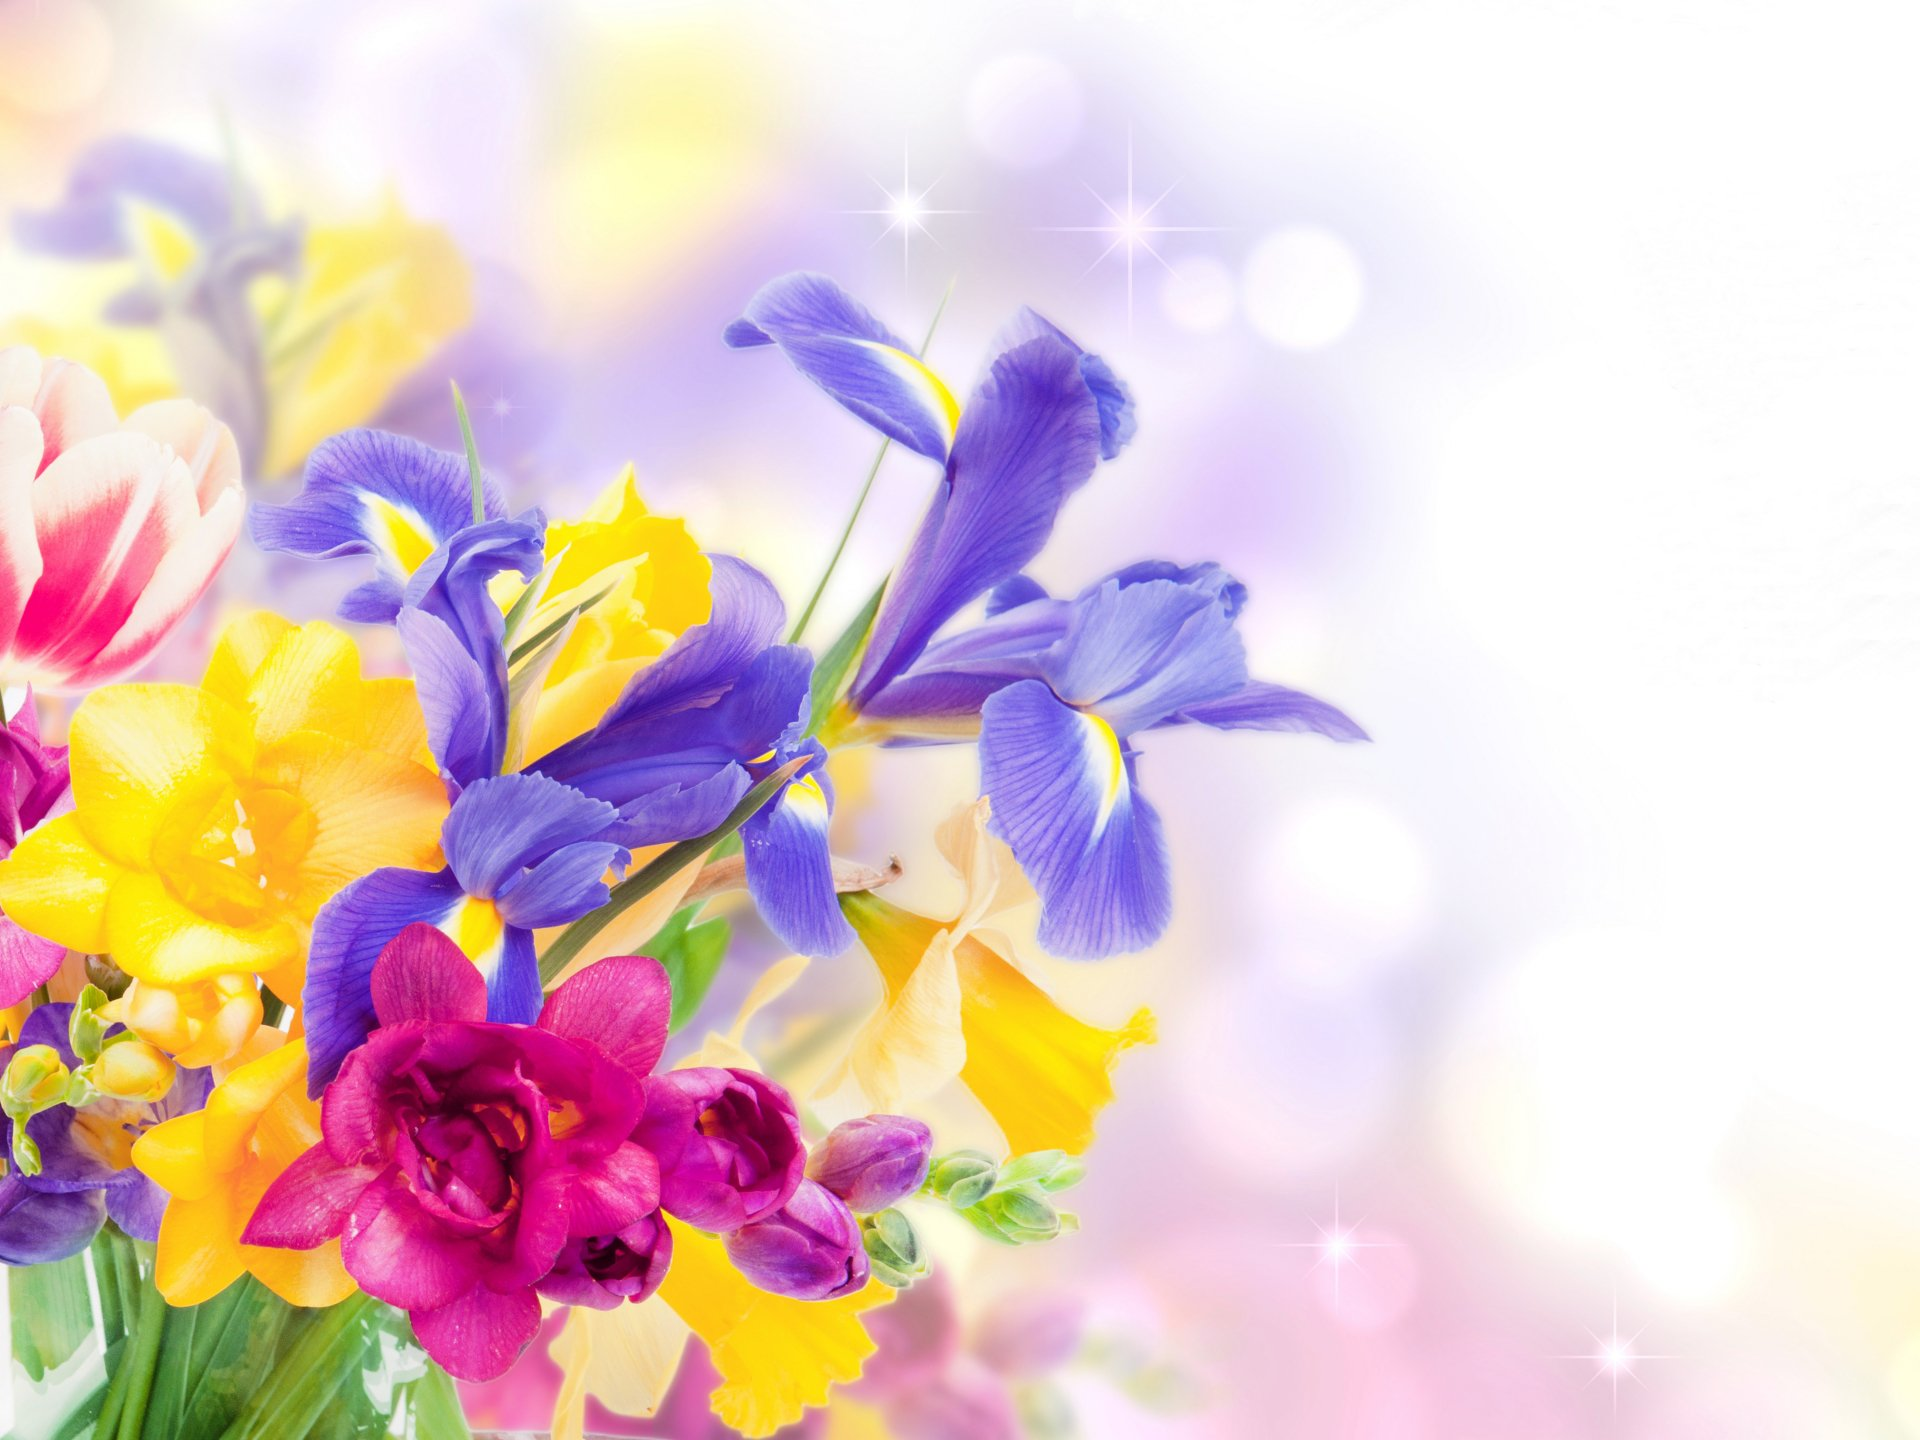 Wallpapers ID:812608